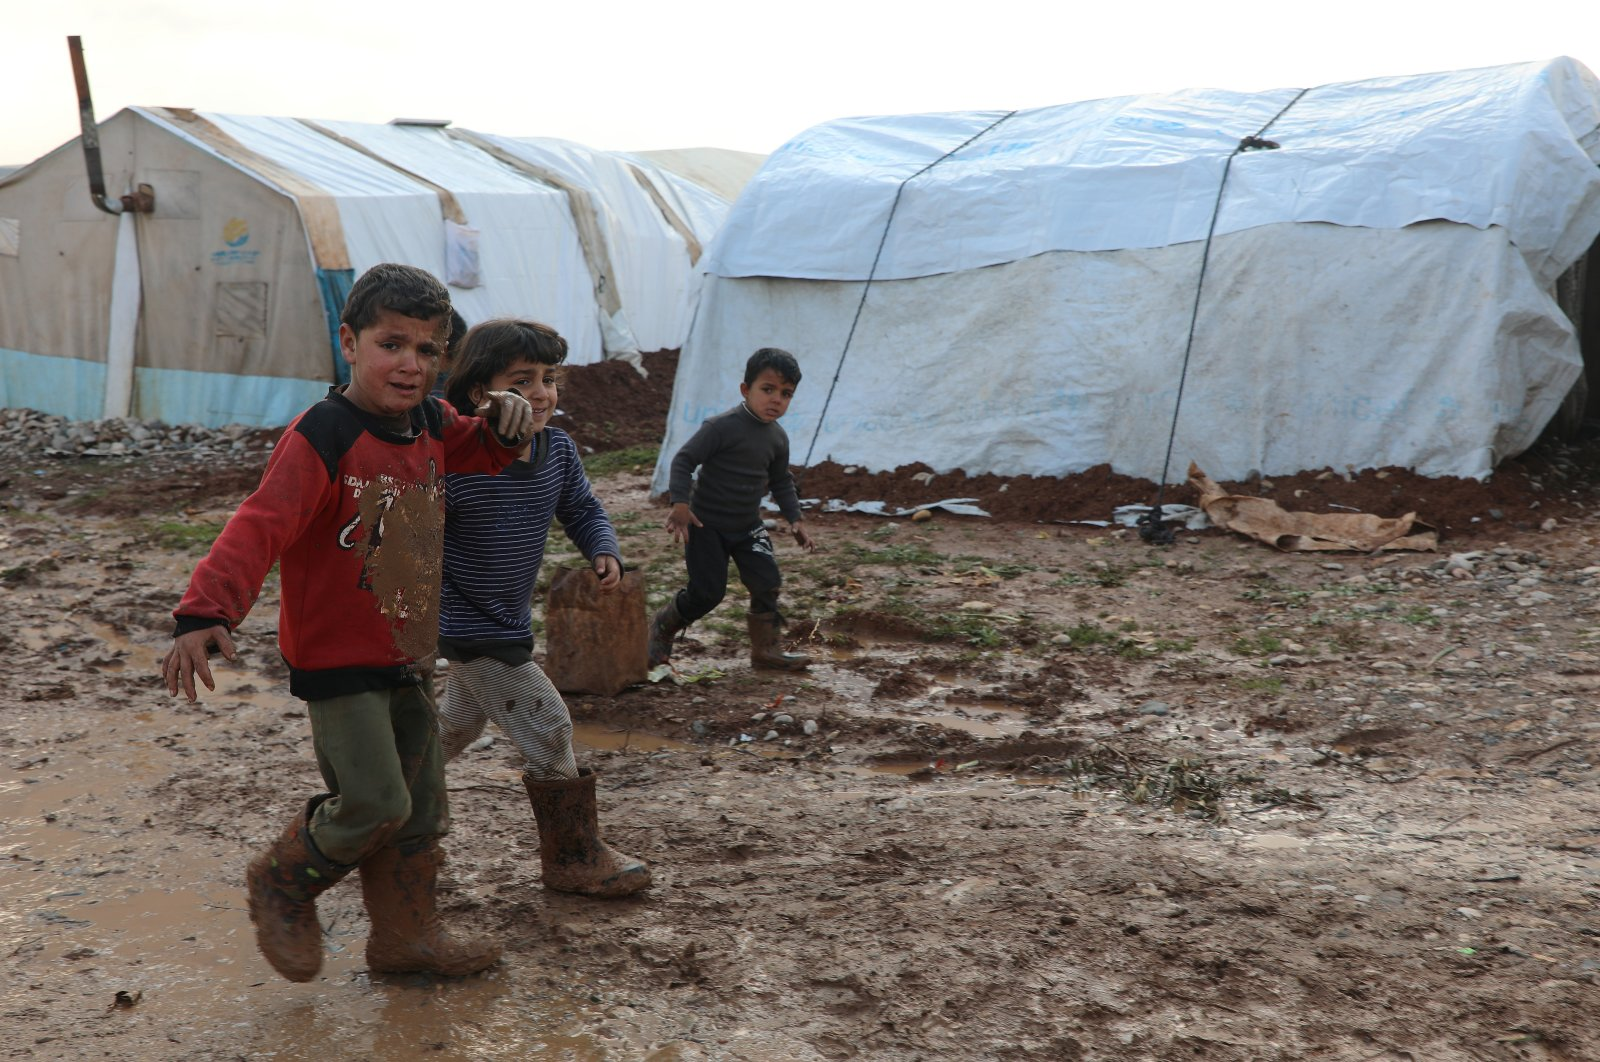 Internally displaced Syrian children walk in a mud near tents, in Northern Aleppo countryside, Syria, Jan. 20, 2021. (Reuters Photo)